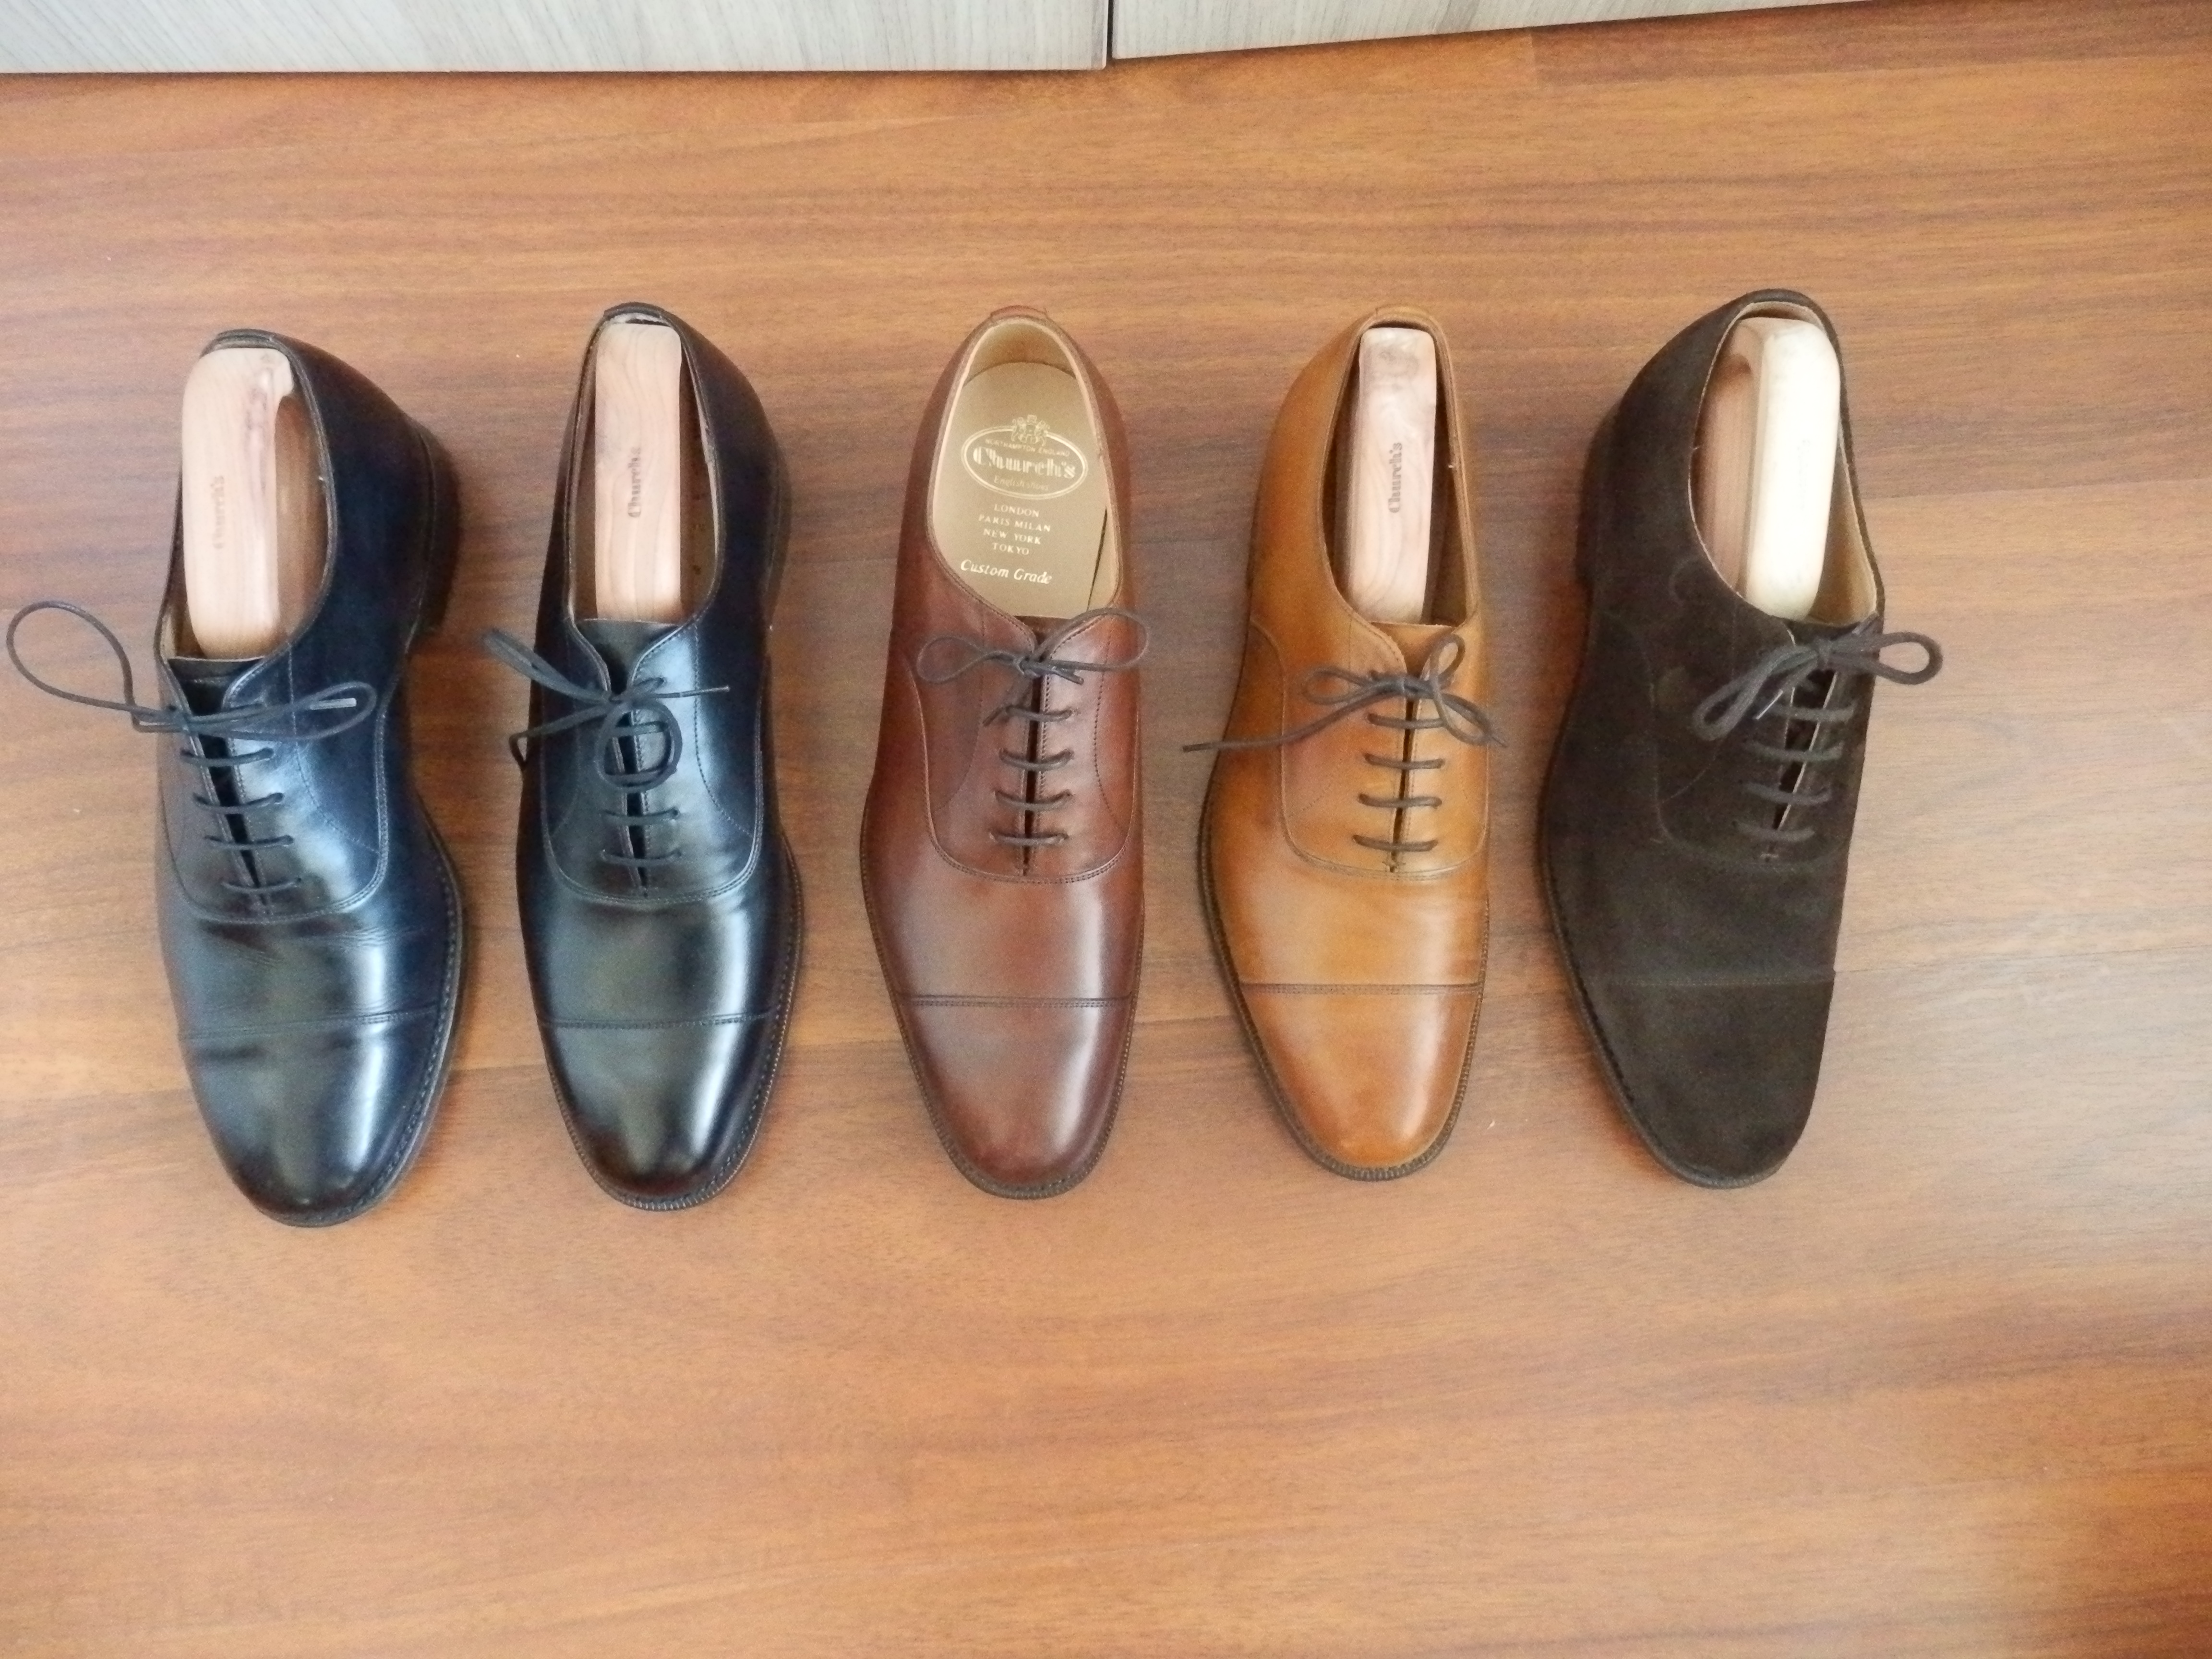 89555842e788c ... black, brown suede and walnut in 173 last. All of them in F fit, all of  them fron Herring's, the black one in 103 was my first pair of good shoes.